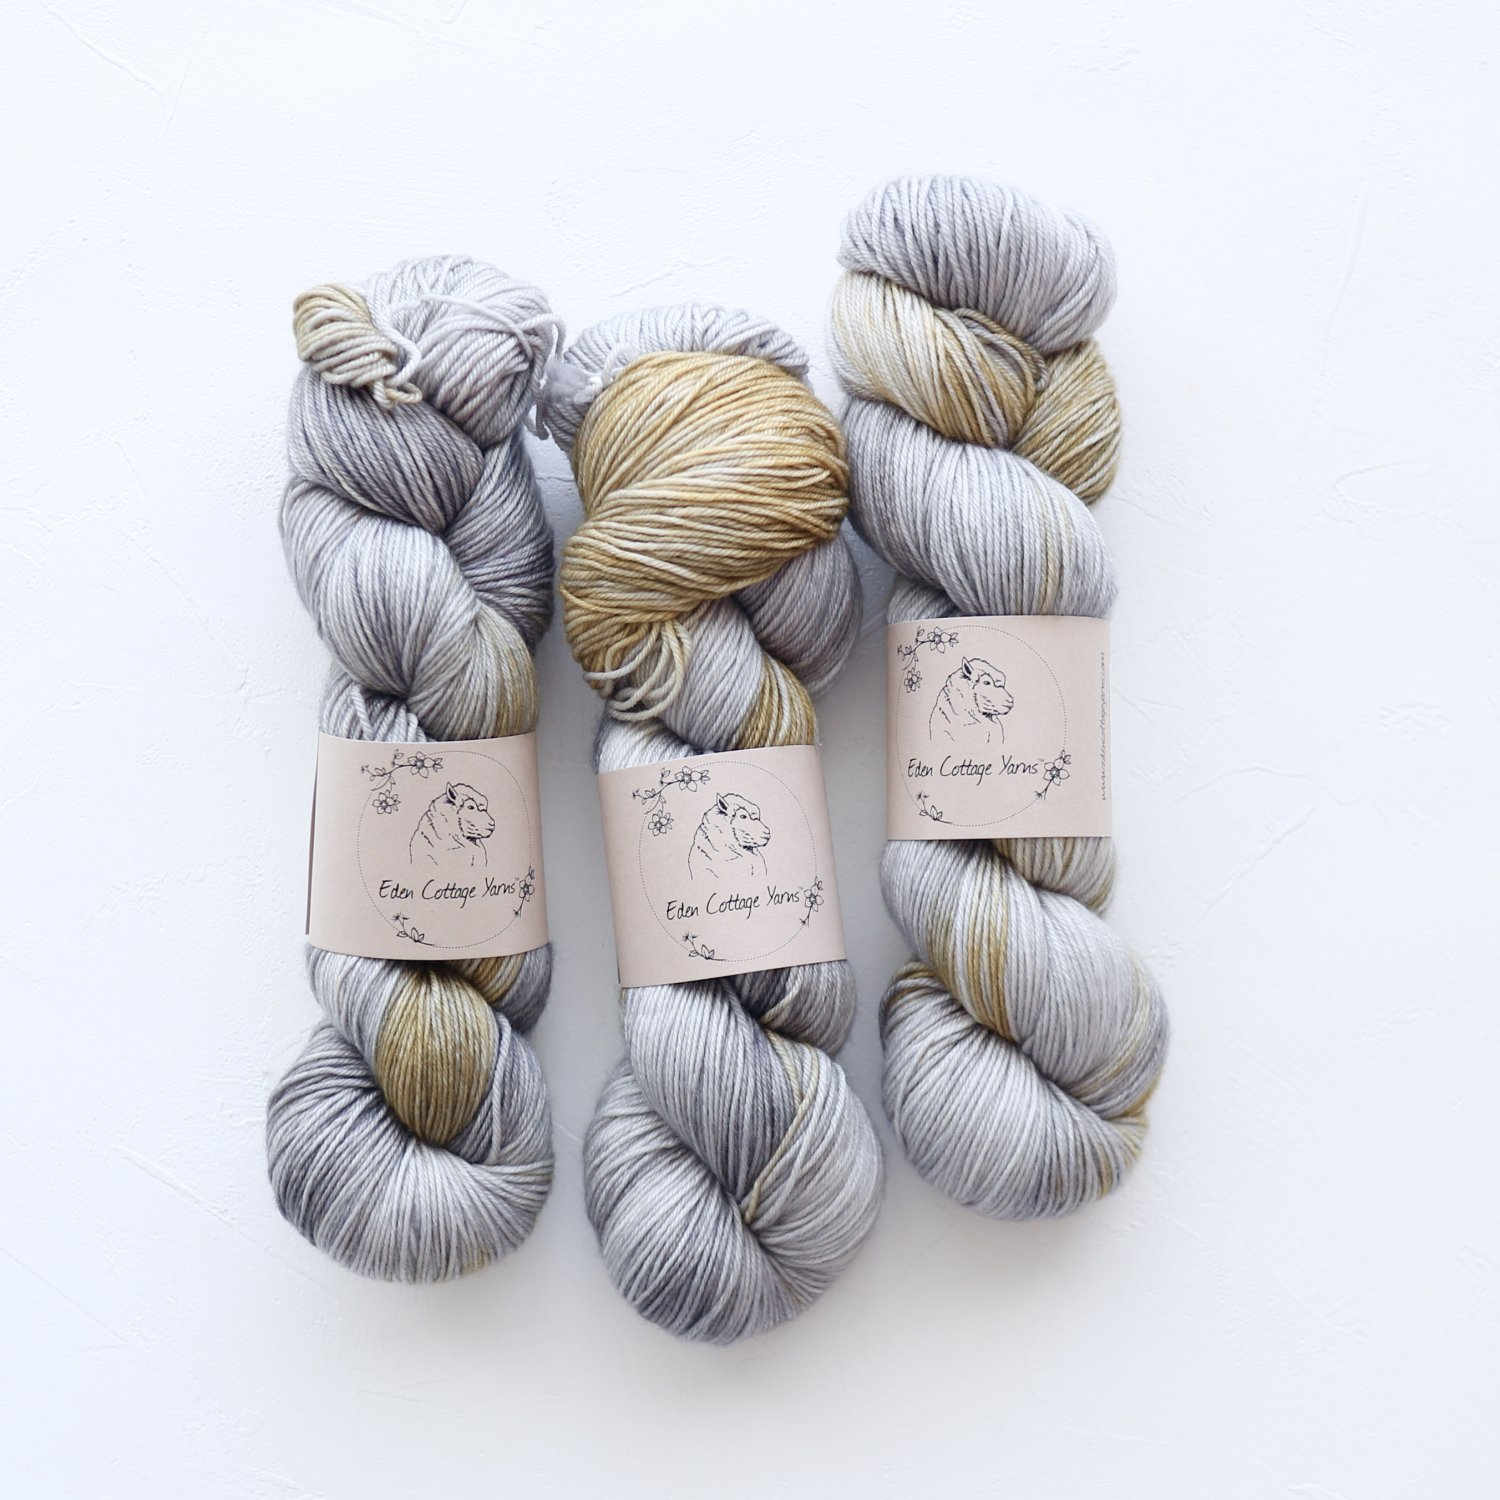 【Eden Cottage Yarns】<br>Pendle 4ply<br>Barn Owl(A)